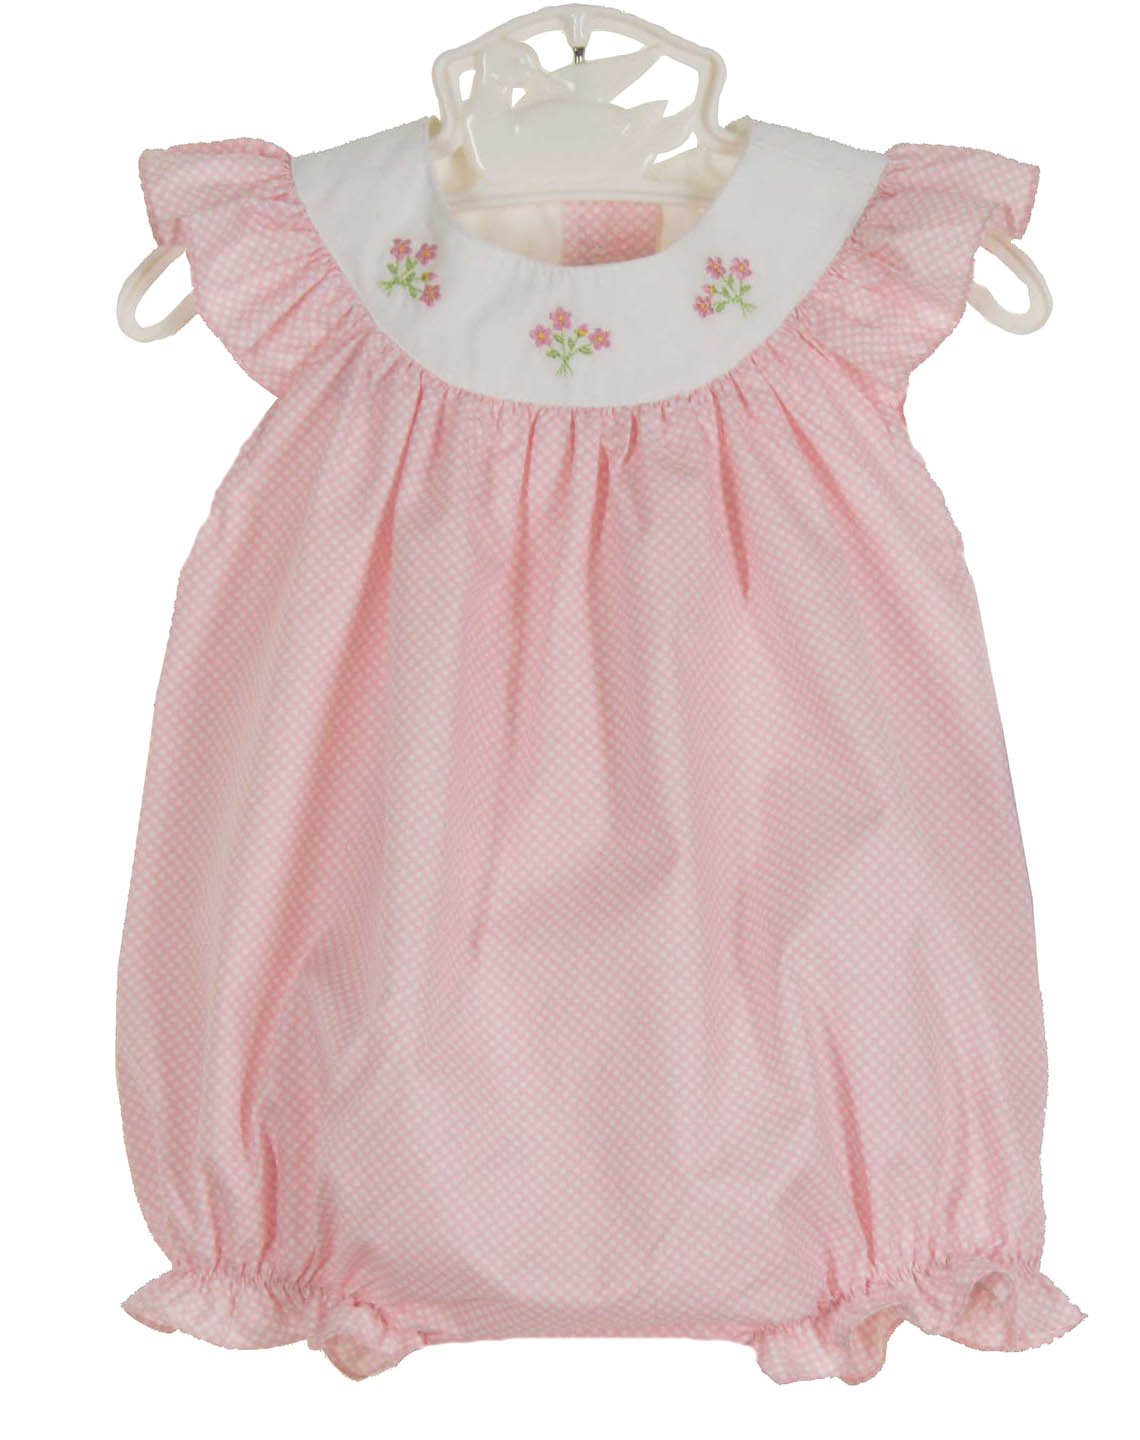 NEW Anavini Pink Dotted Bubble with Embroidered Flowers